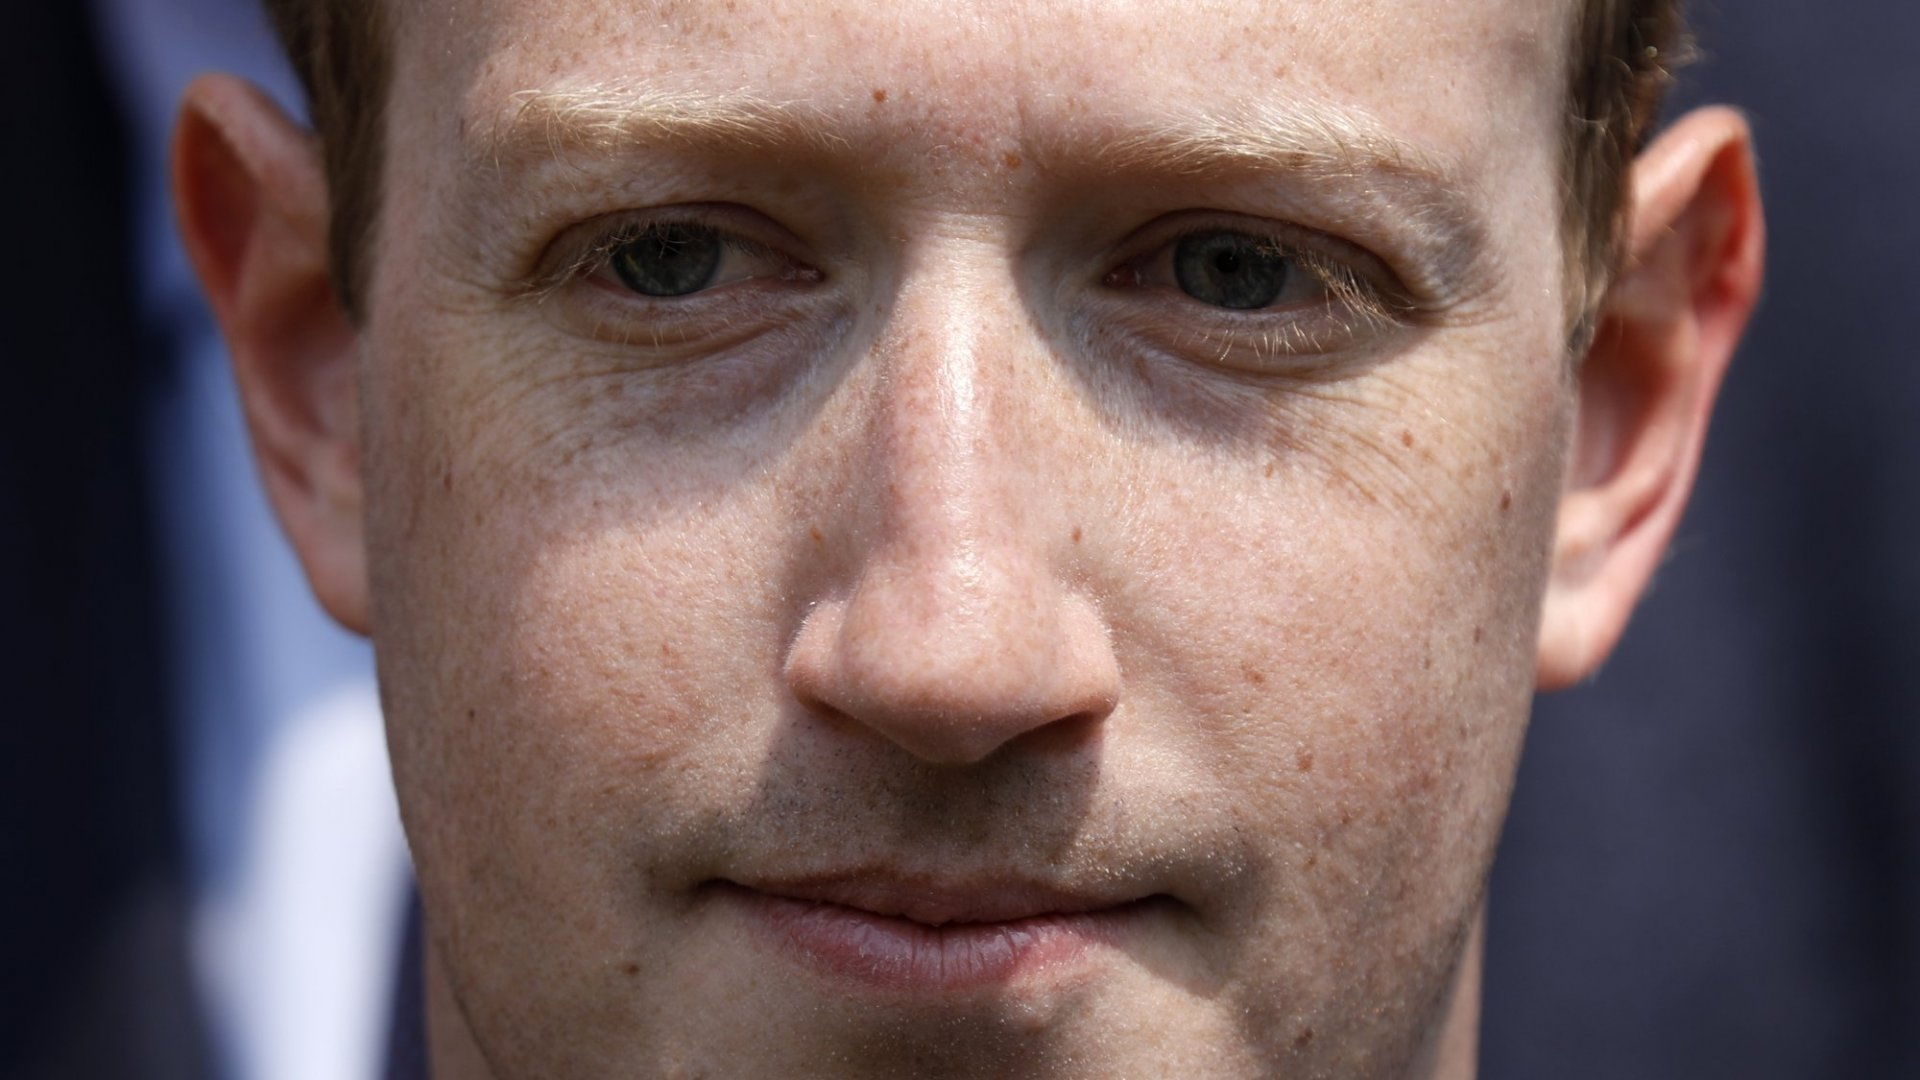 Why Mark Zuckerberg's Emotionally Tone-Deaf Leadership Over Privacy Will Doom Its New Video Chat Product